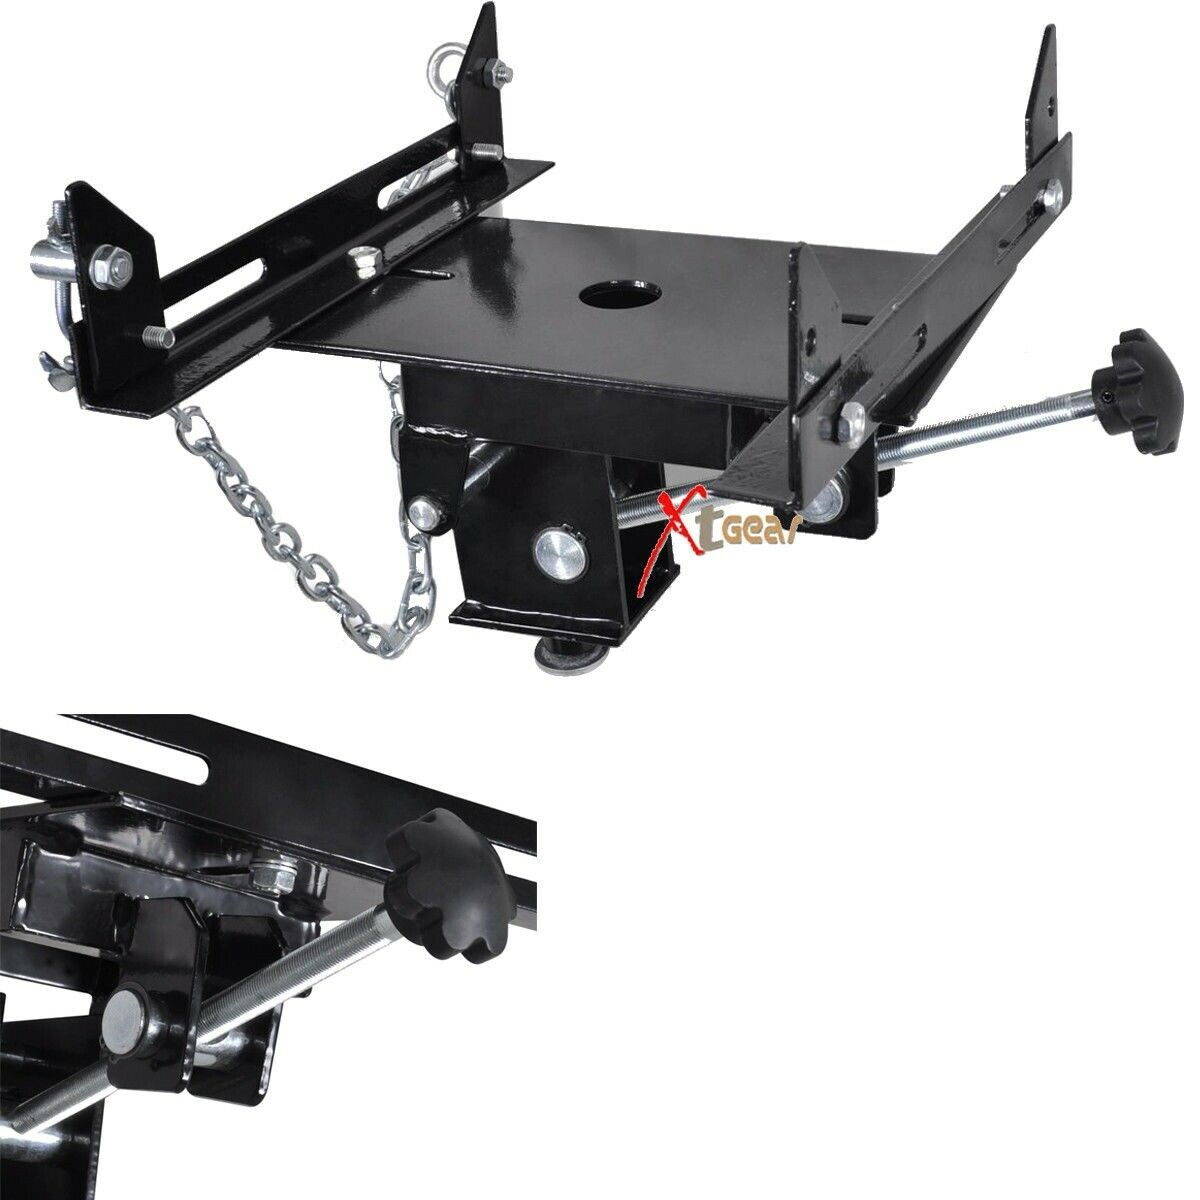 new transmission jack adapter automotive floor jack trans adjustable cad picclick ca. Black Bedroom Furniture Sets. Home Design Ideas